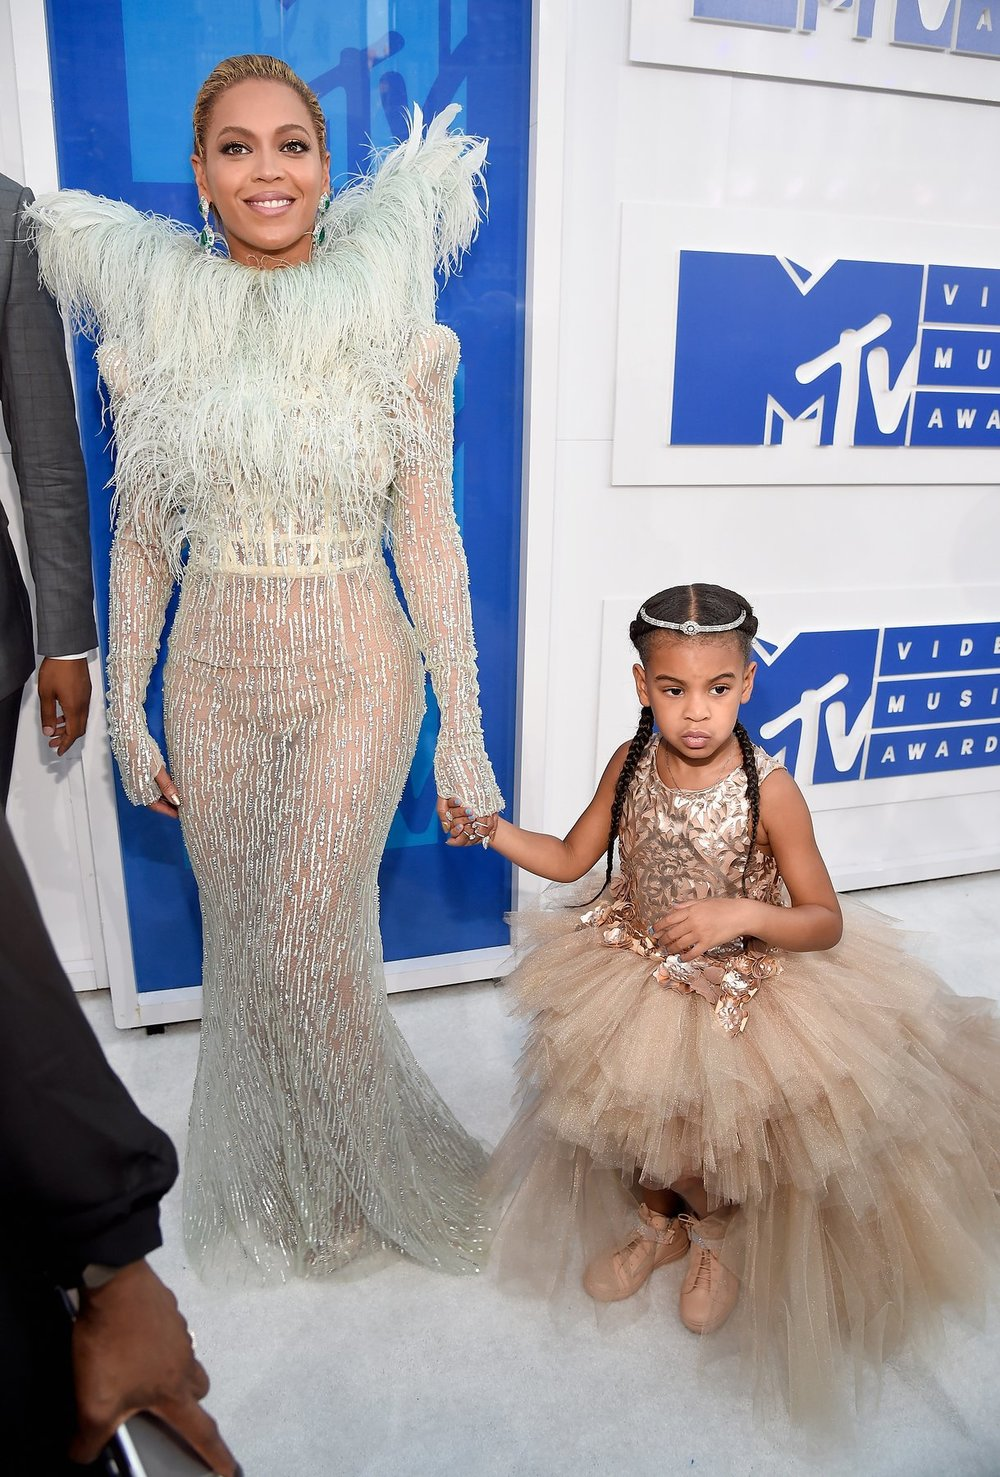 There's really no contest for best dressed when Beyoncé turns up on the red carpet dressed like an angel with her little cherub Blue Ivy by her side... without doubt, once again Queen B steals the show.